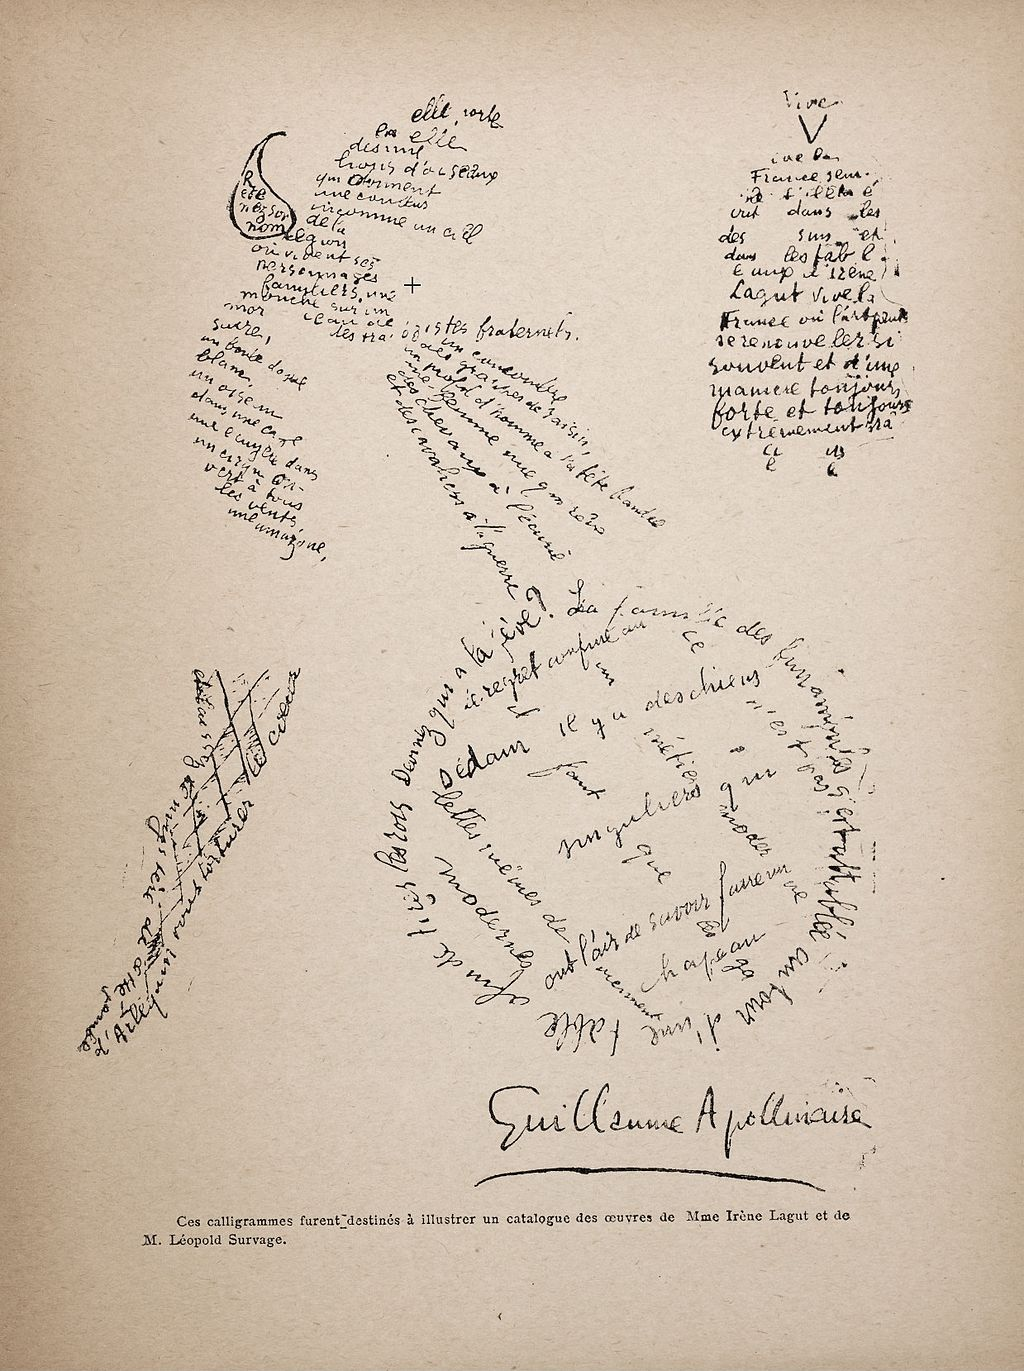 Guillaume_Apollinaire,_Poème_Calligramme.jpg